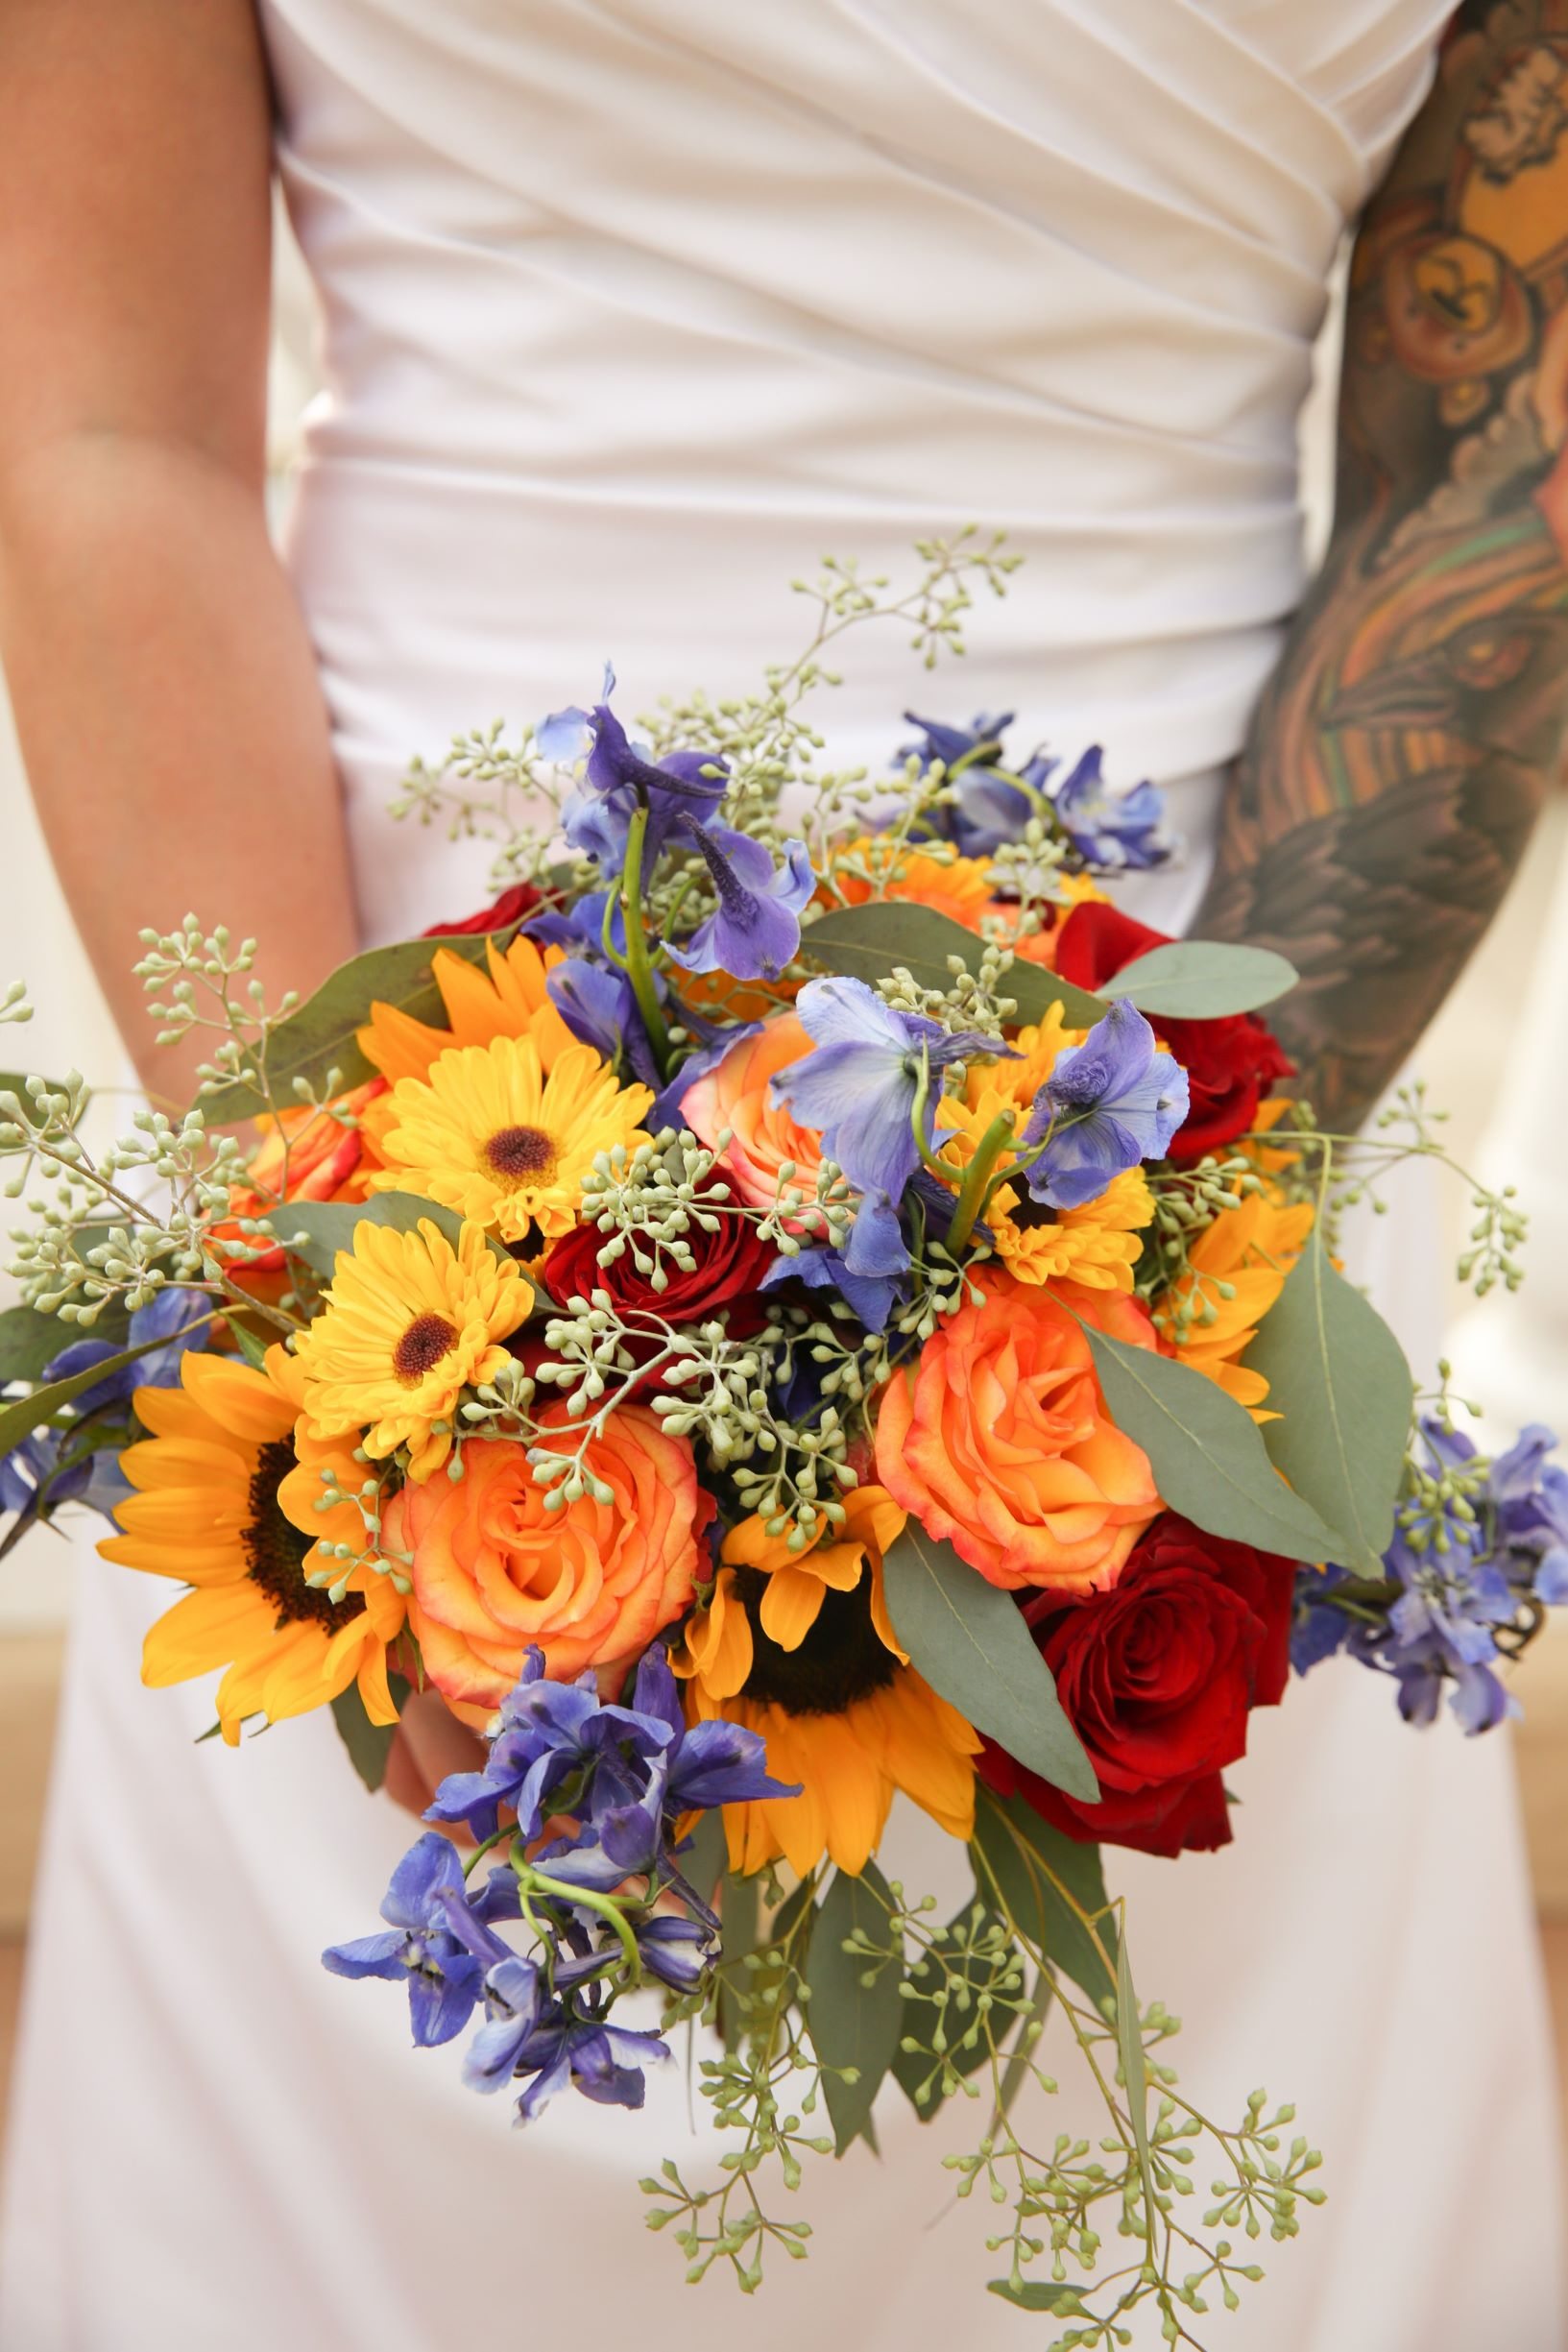 Fragrant Fall Wedding Bouquet with Sunflowers